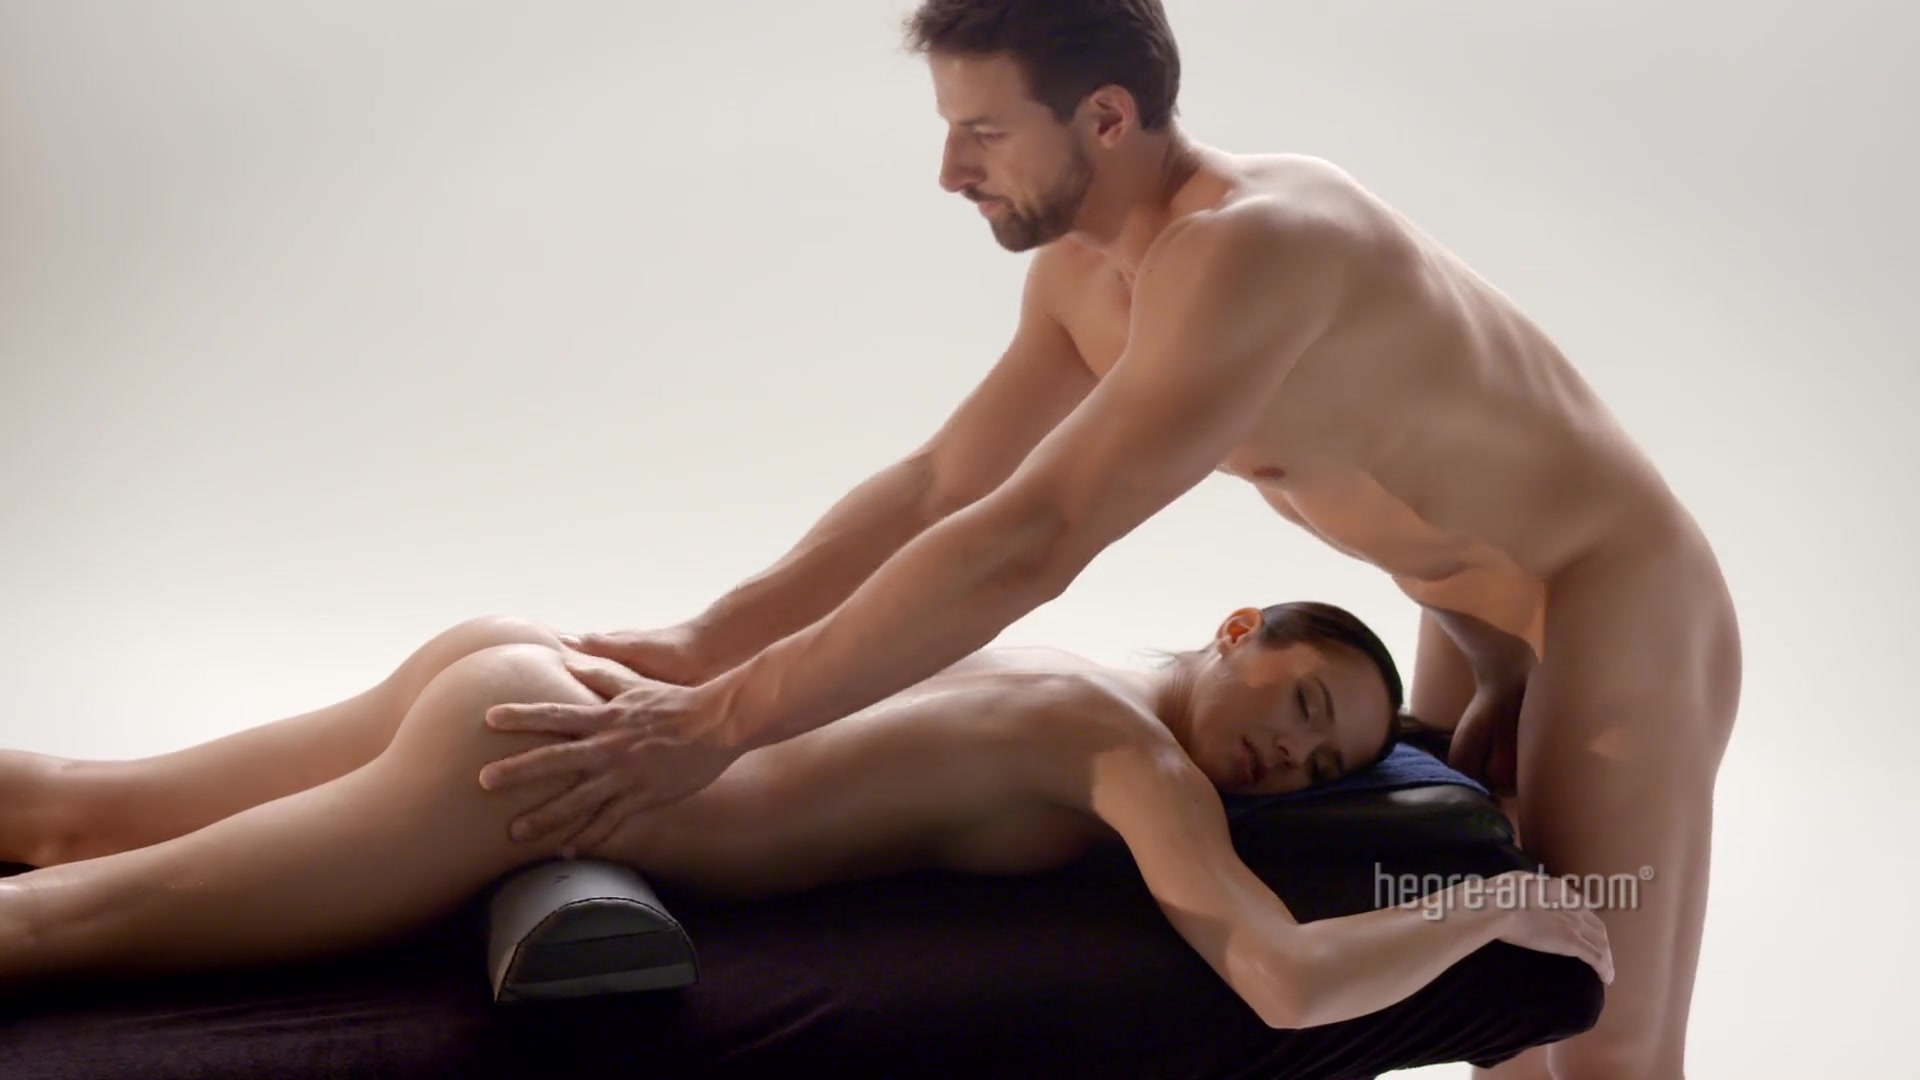 extreme erotic massage porno art